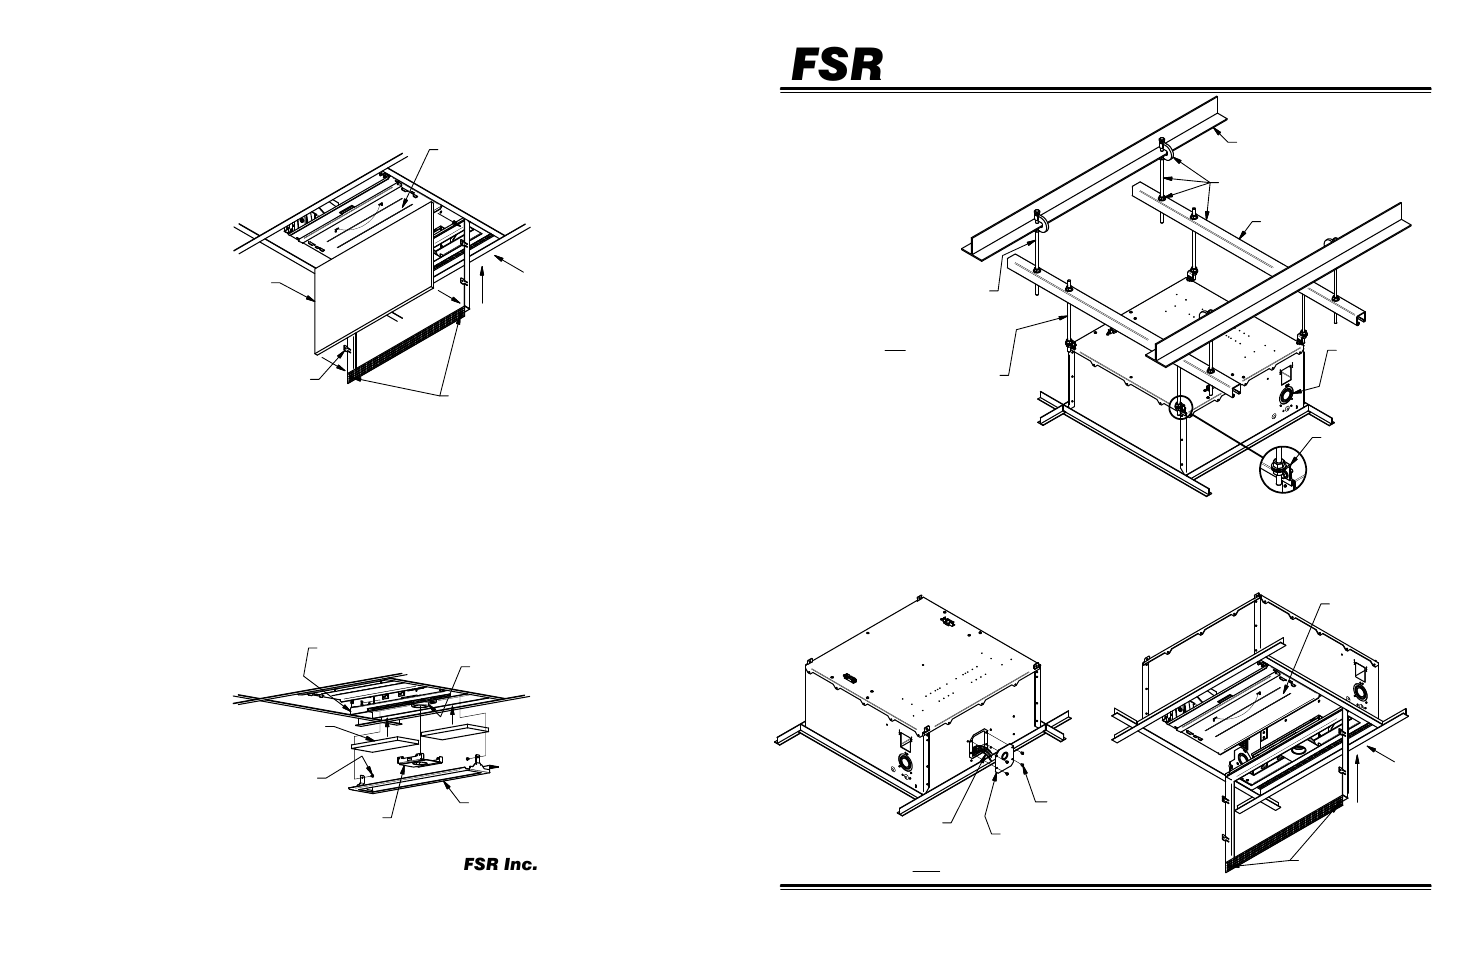 Fsr Cb 224p Sp User Manual 2 Pages Wiring Ceiling Box